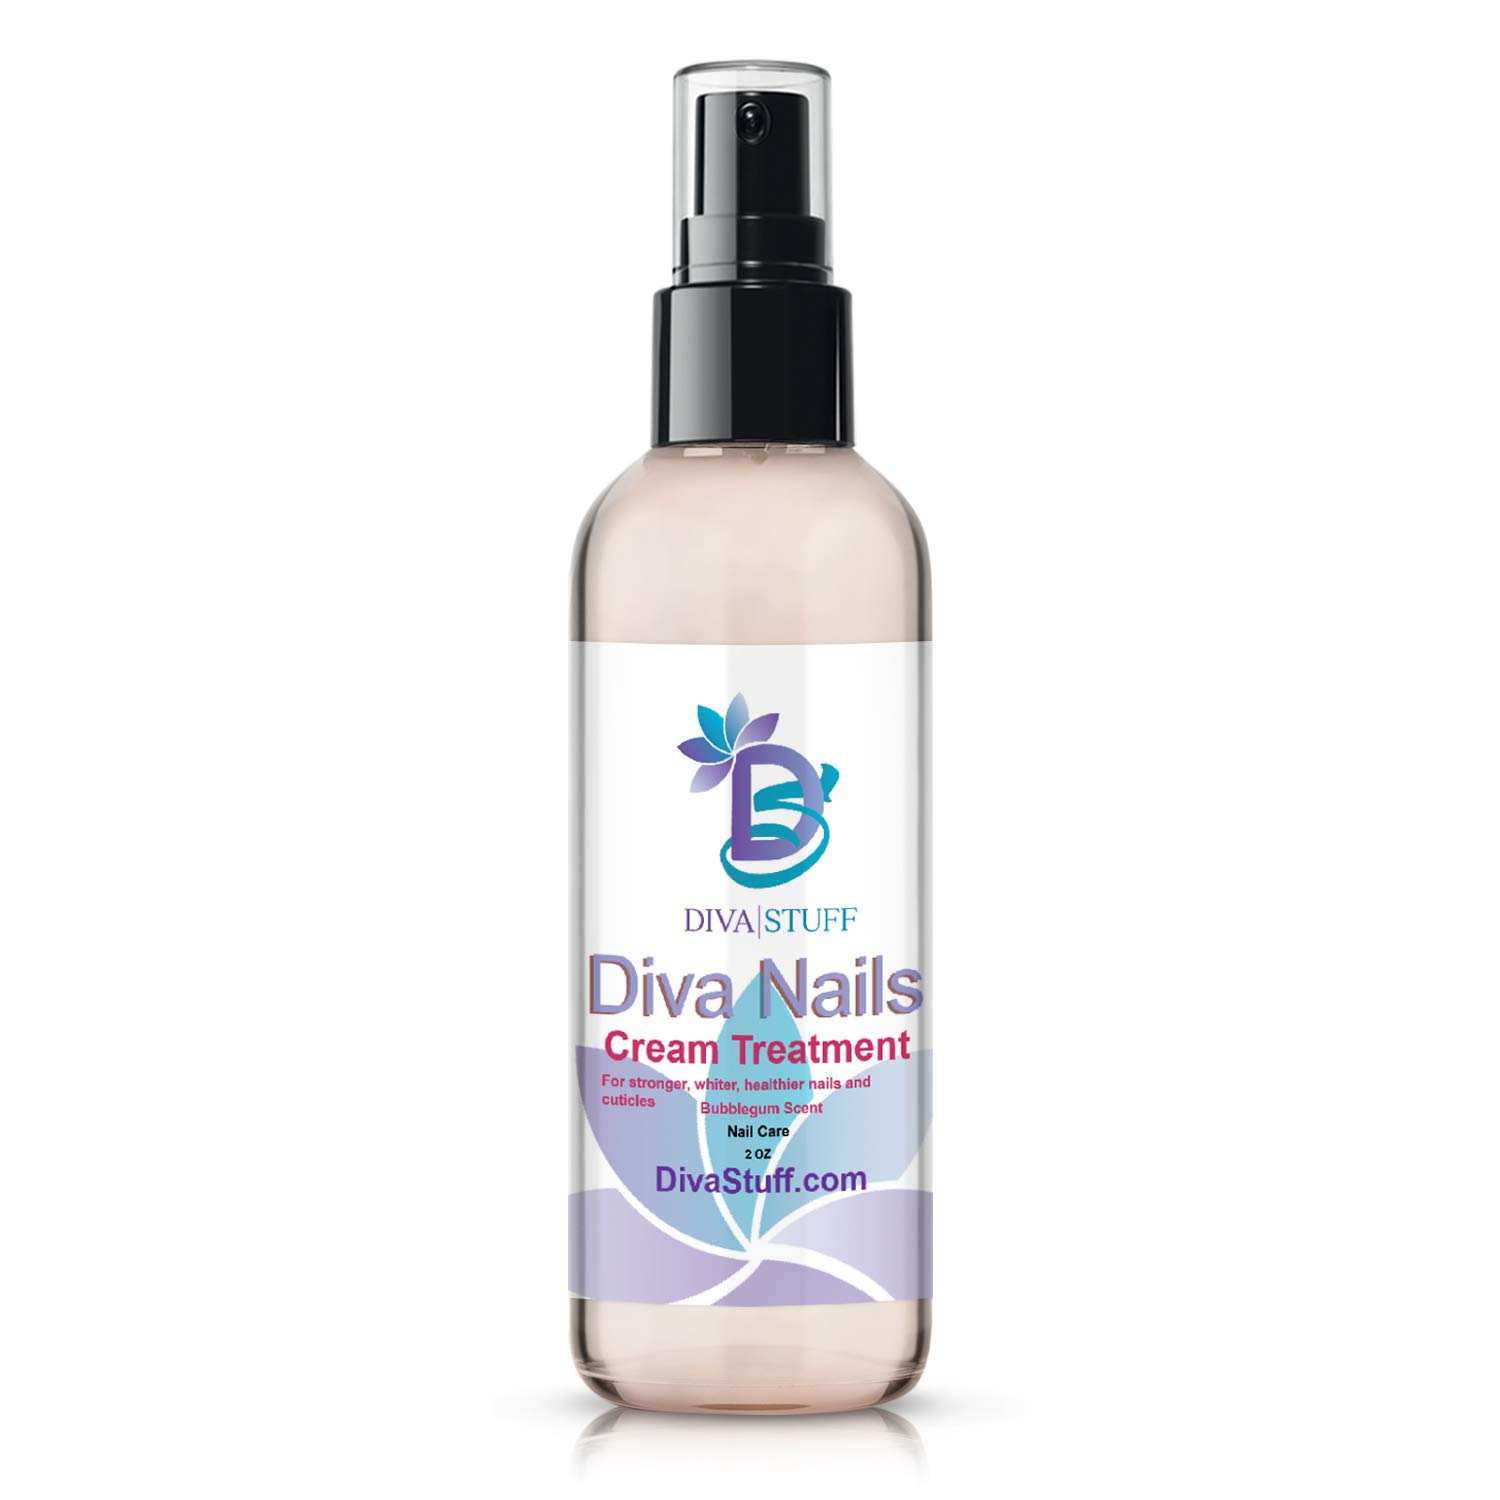 Diva Stuff Diva Nails Cream Treatment | For Stronger & Healthier Cuticles | No More Chips, Cracks & Splits | Made in the USA with Safe Ingredients | Blue Bubblegum Scent | 2 fl oz